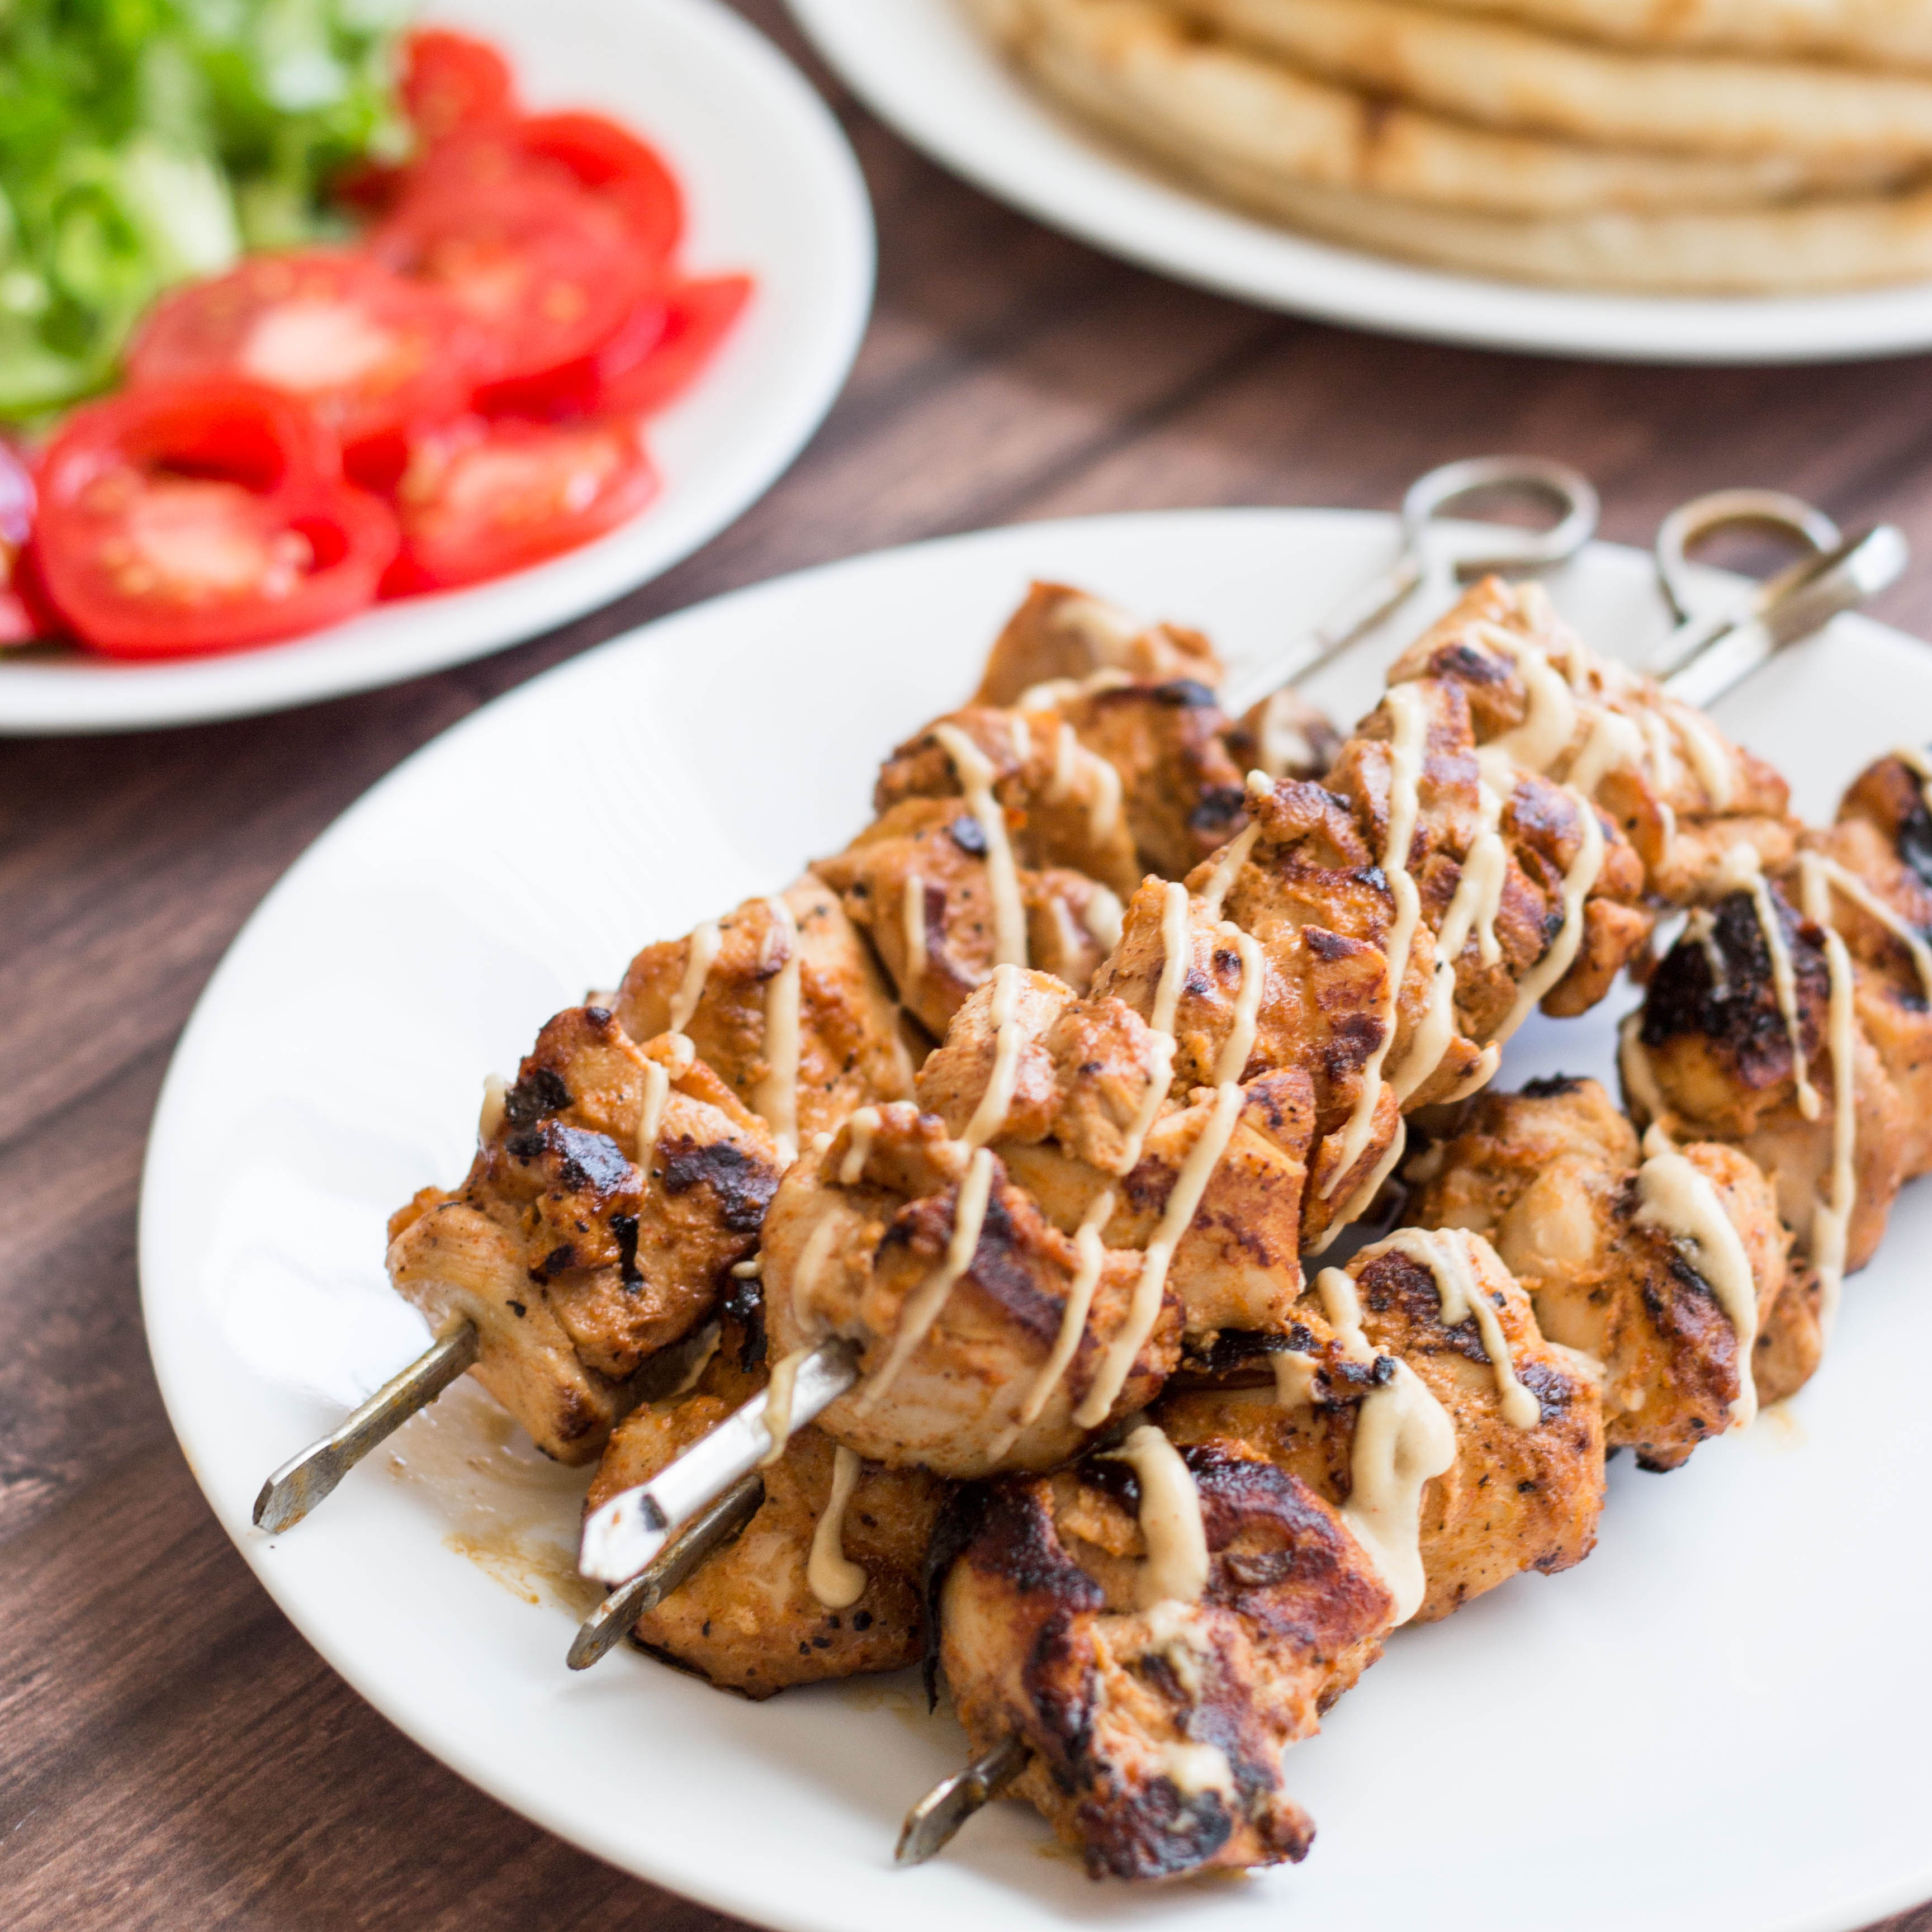 Marinated chicken skewers with pearl couscous salad (shipude..